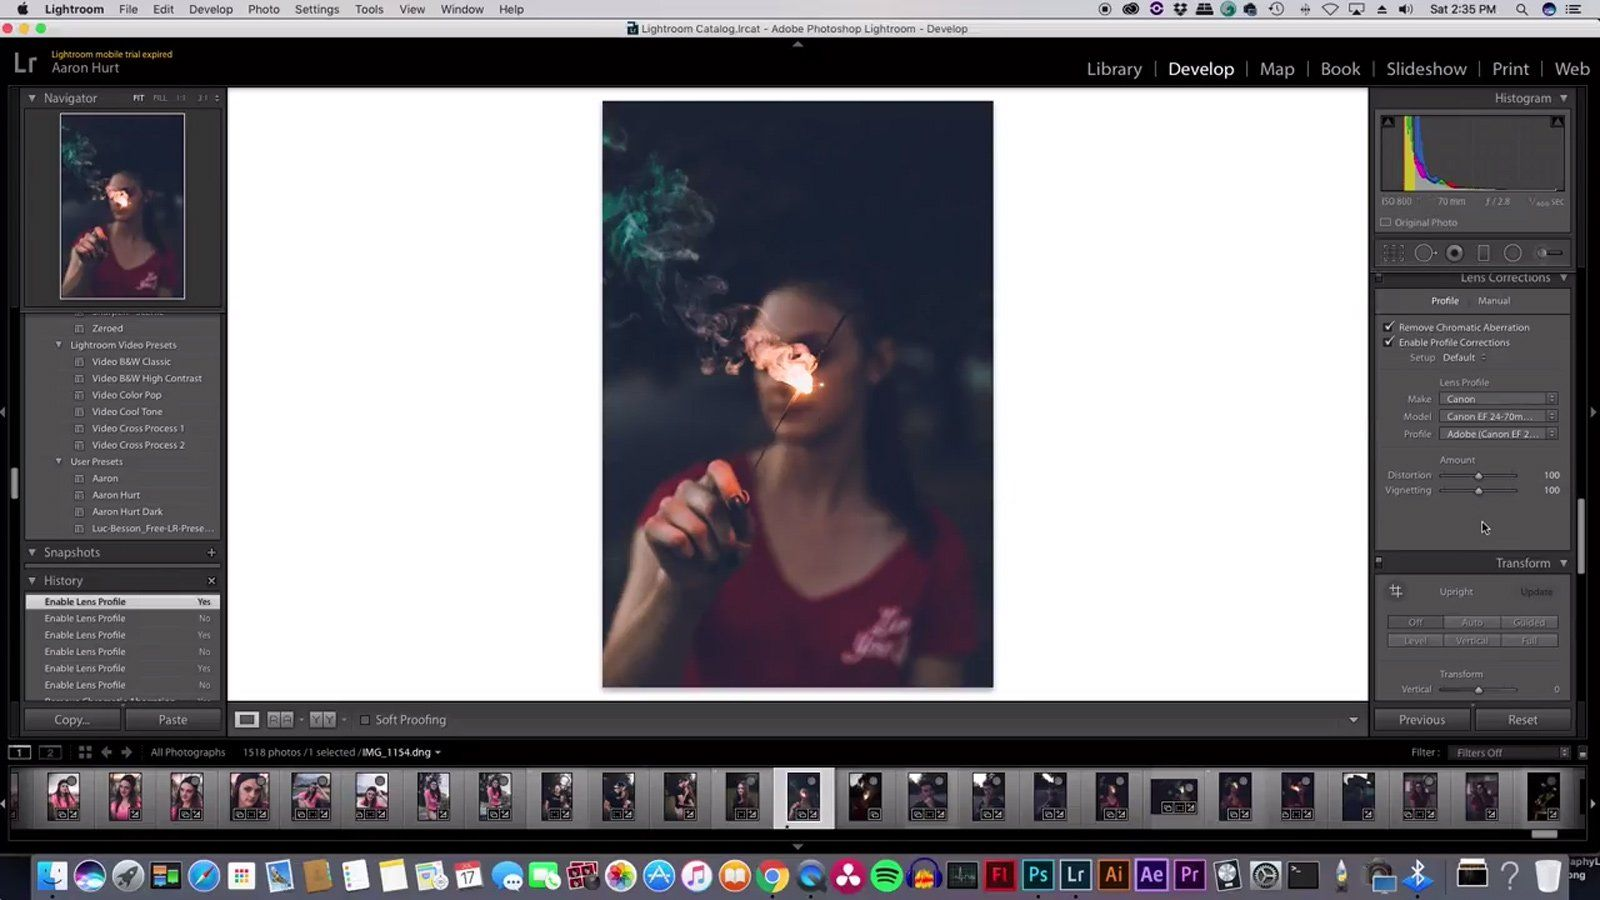 Recreating Brandon Woelfel S Editing Style In Lightroom And Photoshop Photoshop Photoshop Lightroom Brandon Woelfel